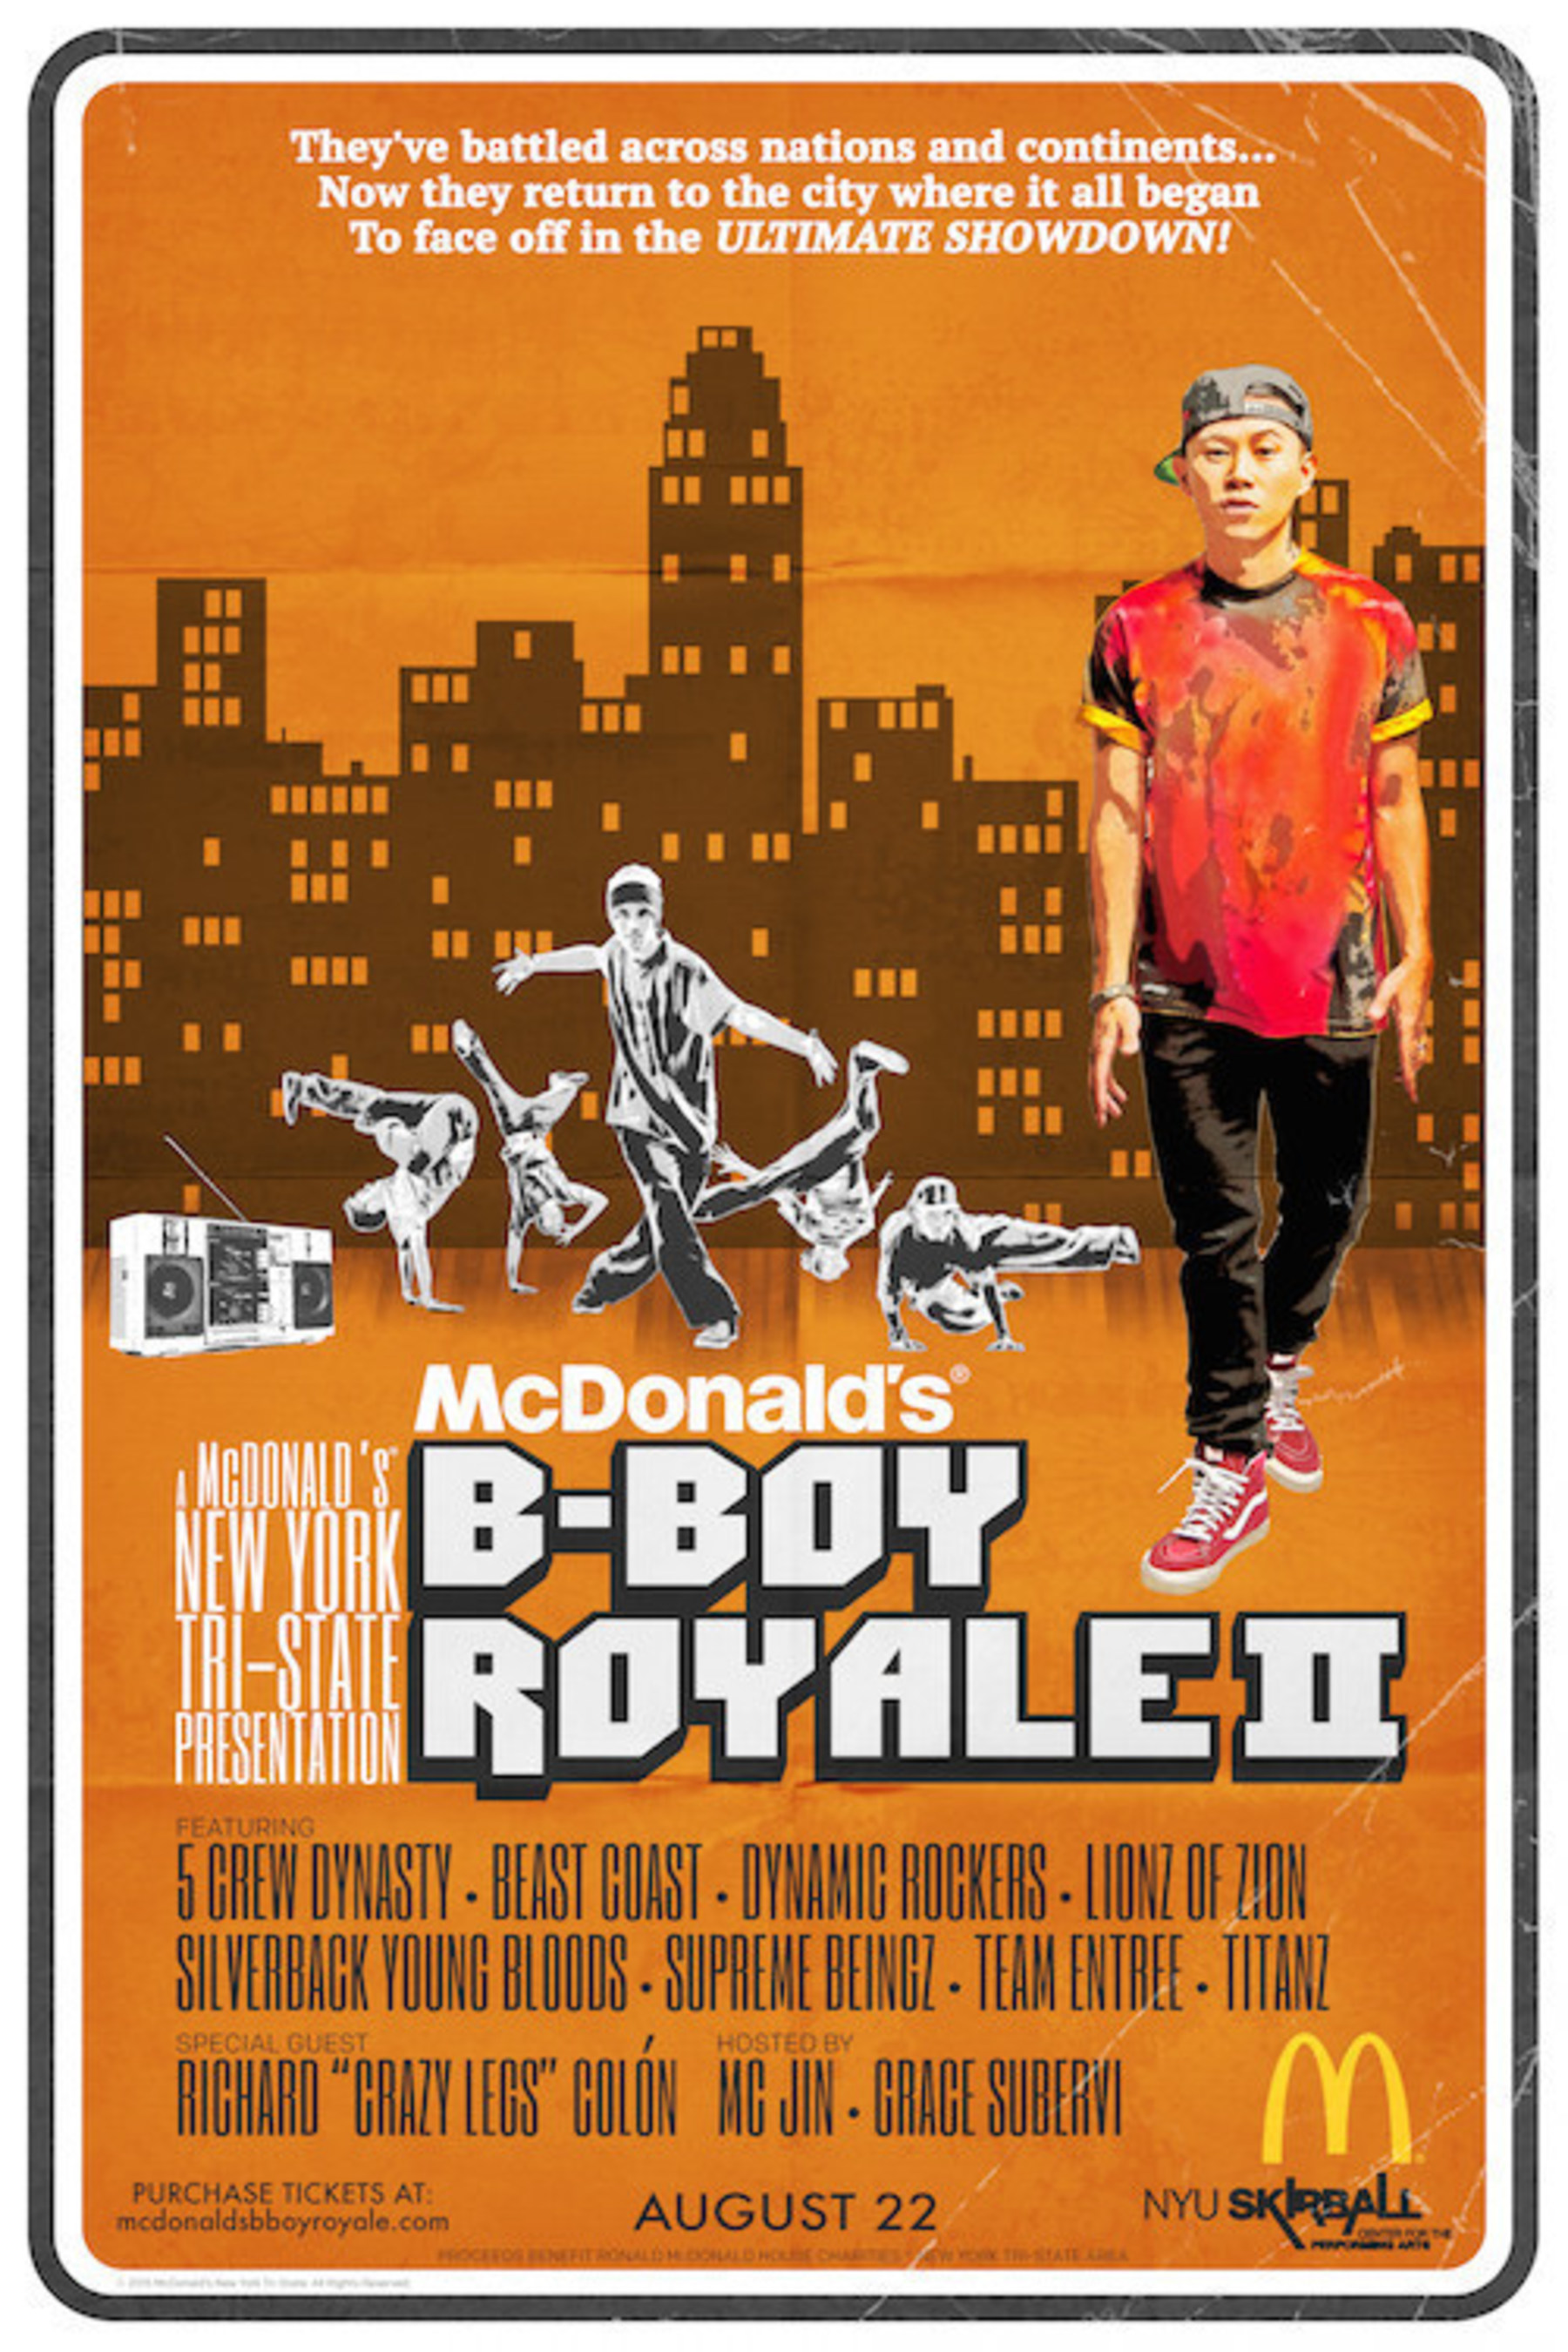 McDonald's B-Boy Royale II, the city's largest annual breakdance competition, will take place on August 22 at the NYU Skirball Center for the Performing Arts.